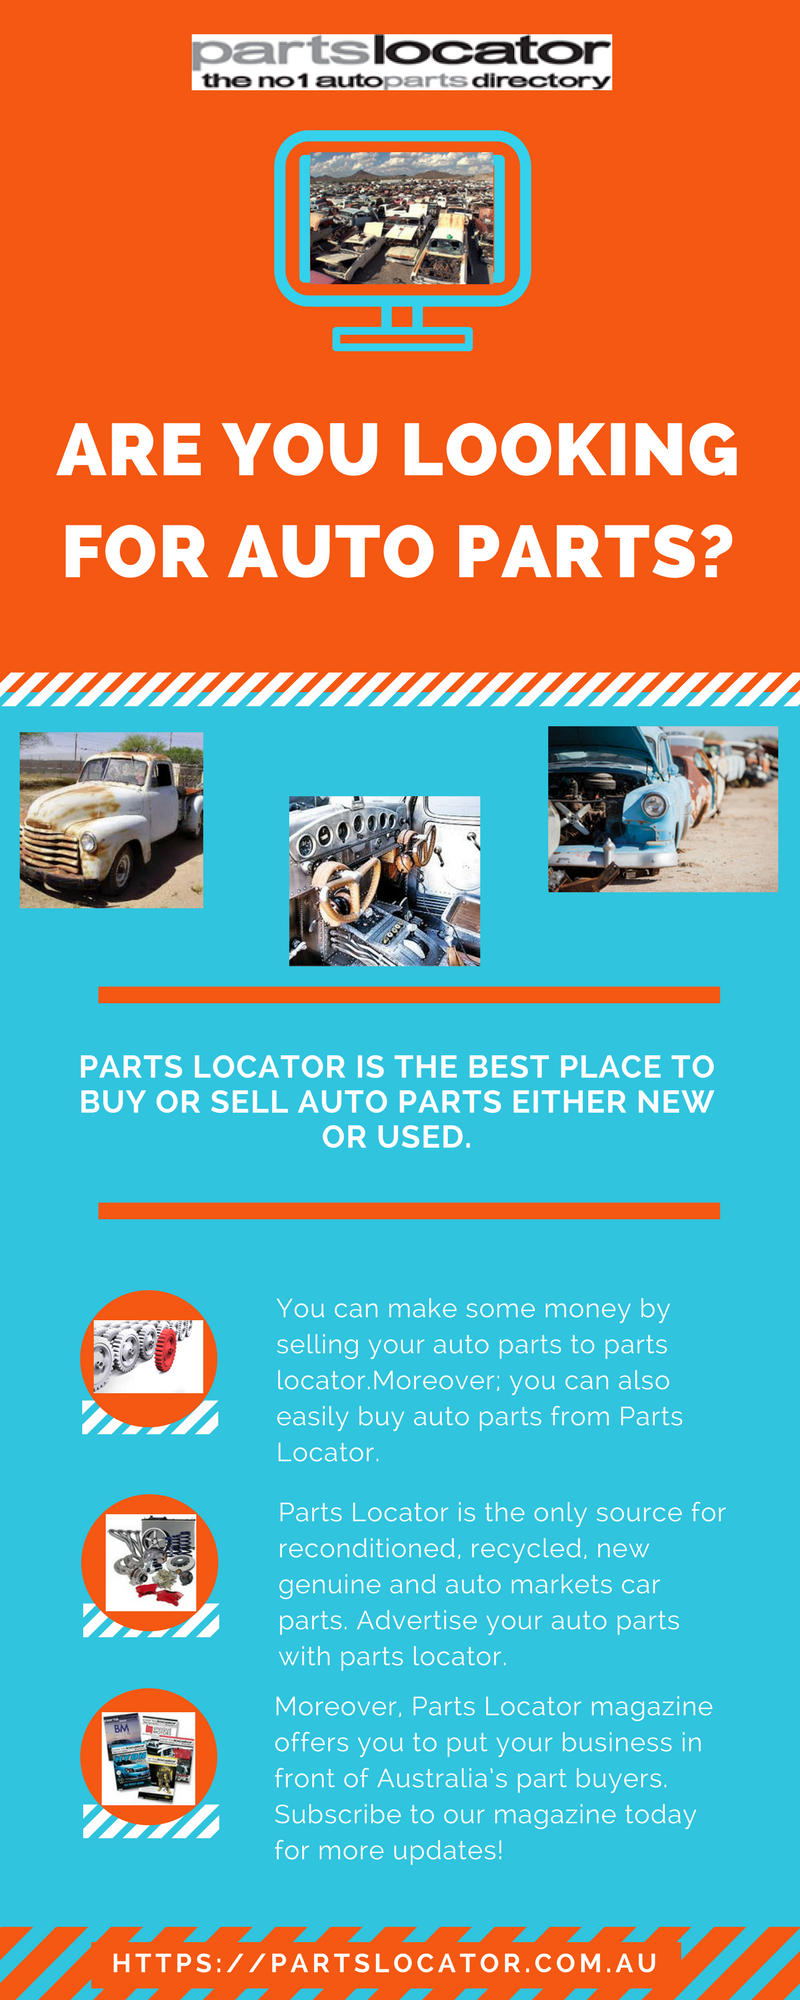 Parts locator is the best place to buy or sell used and new auto ...